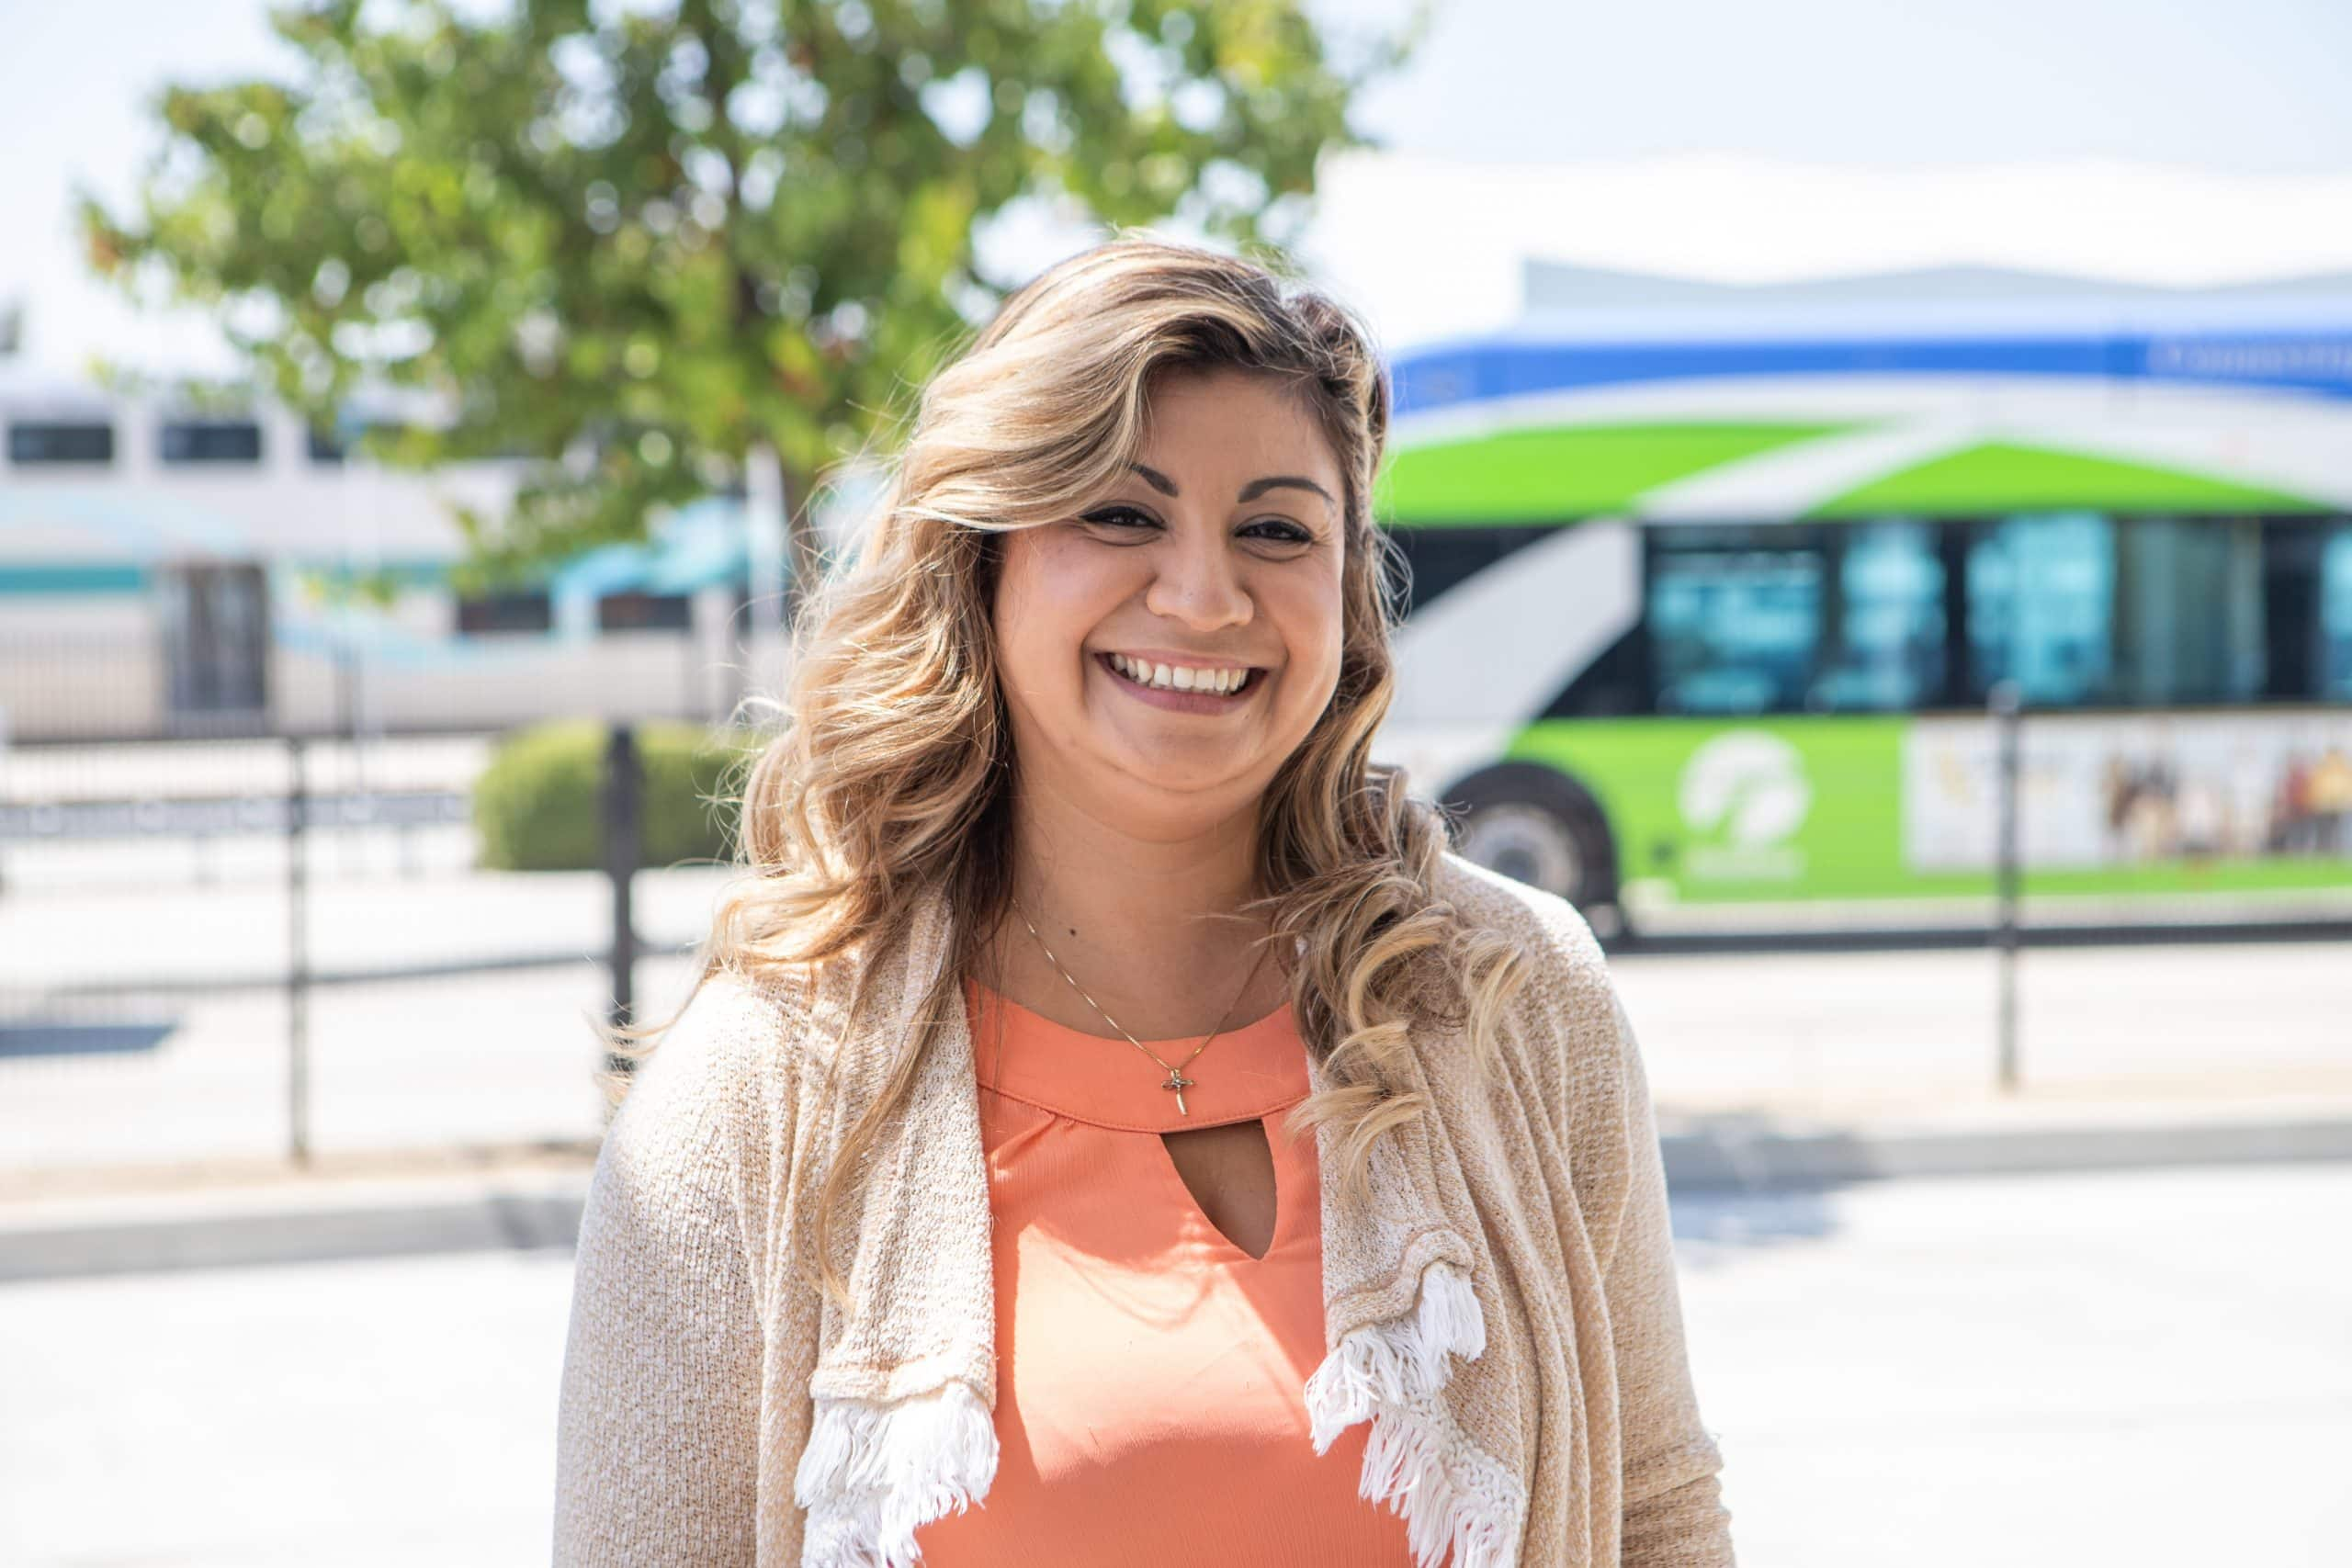 smiling woman in front of bus